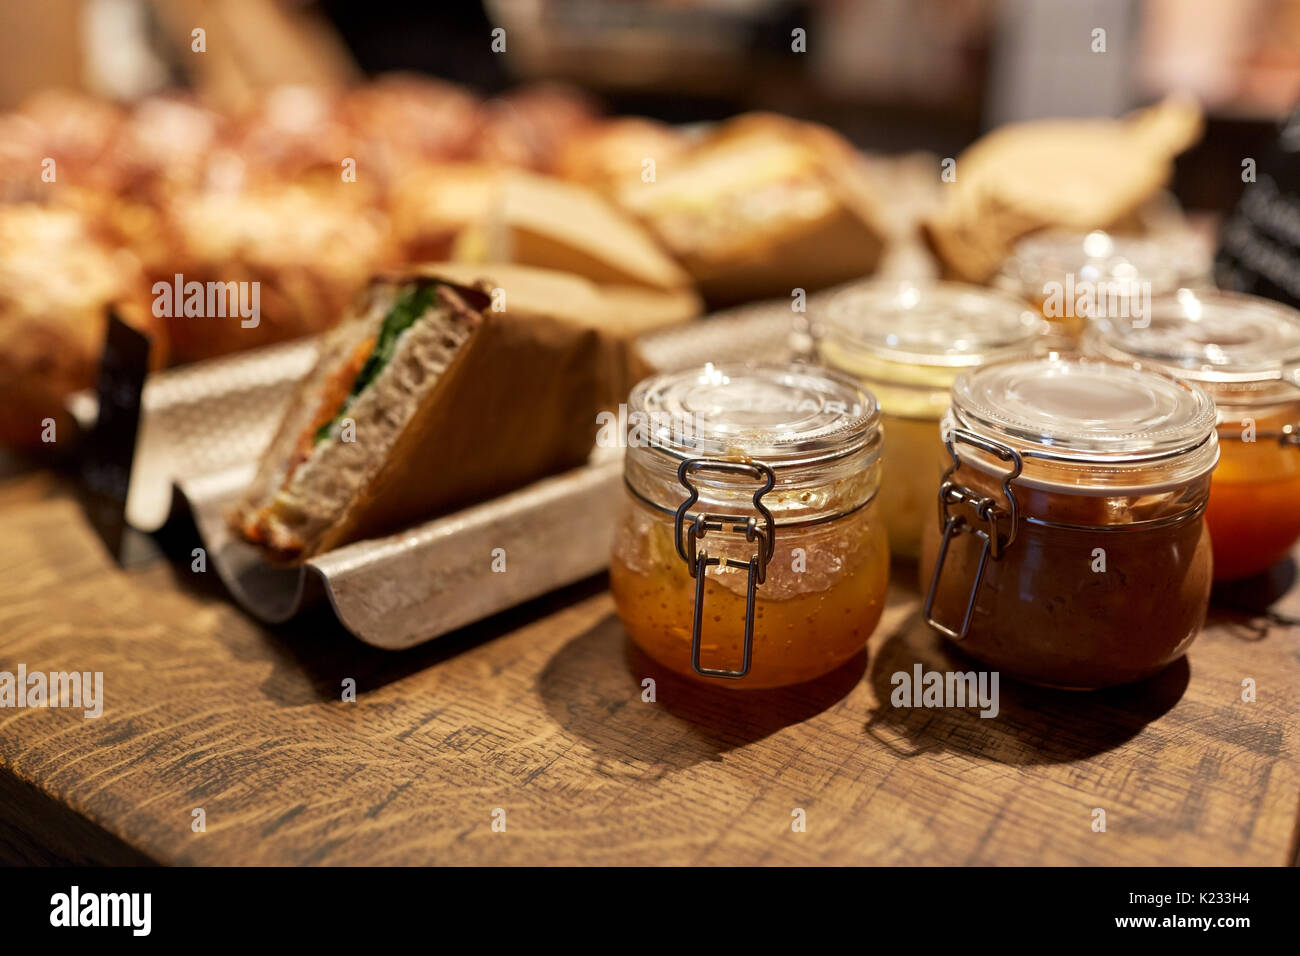 craft jam, food at store or grocery - Stock Image